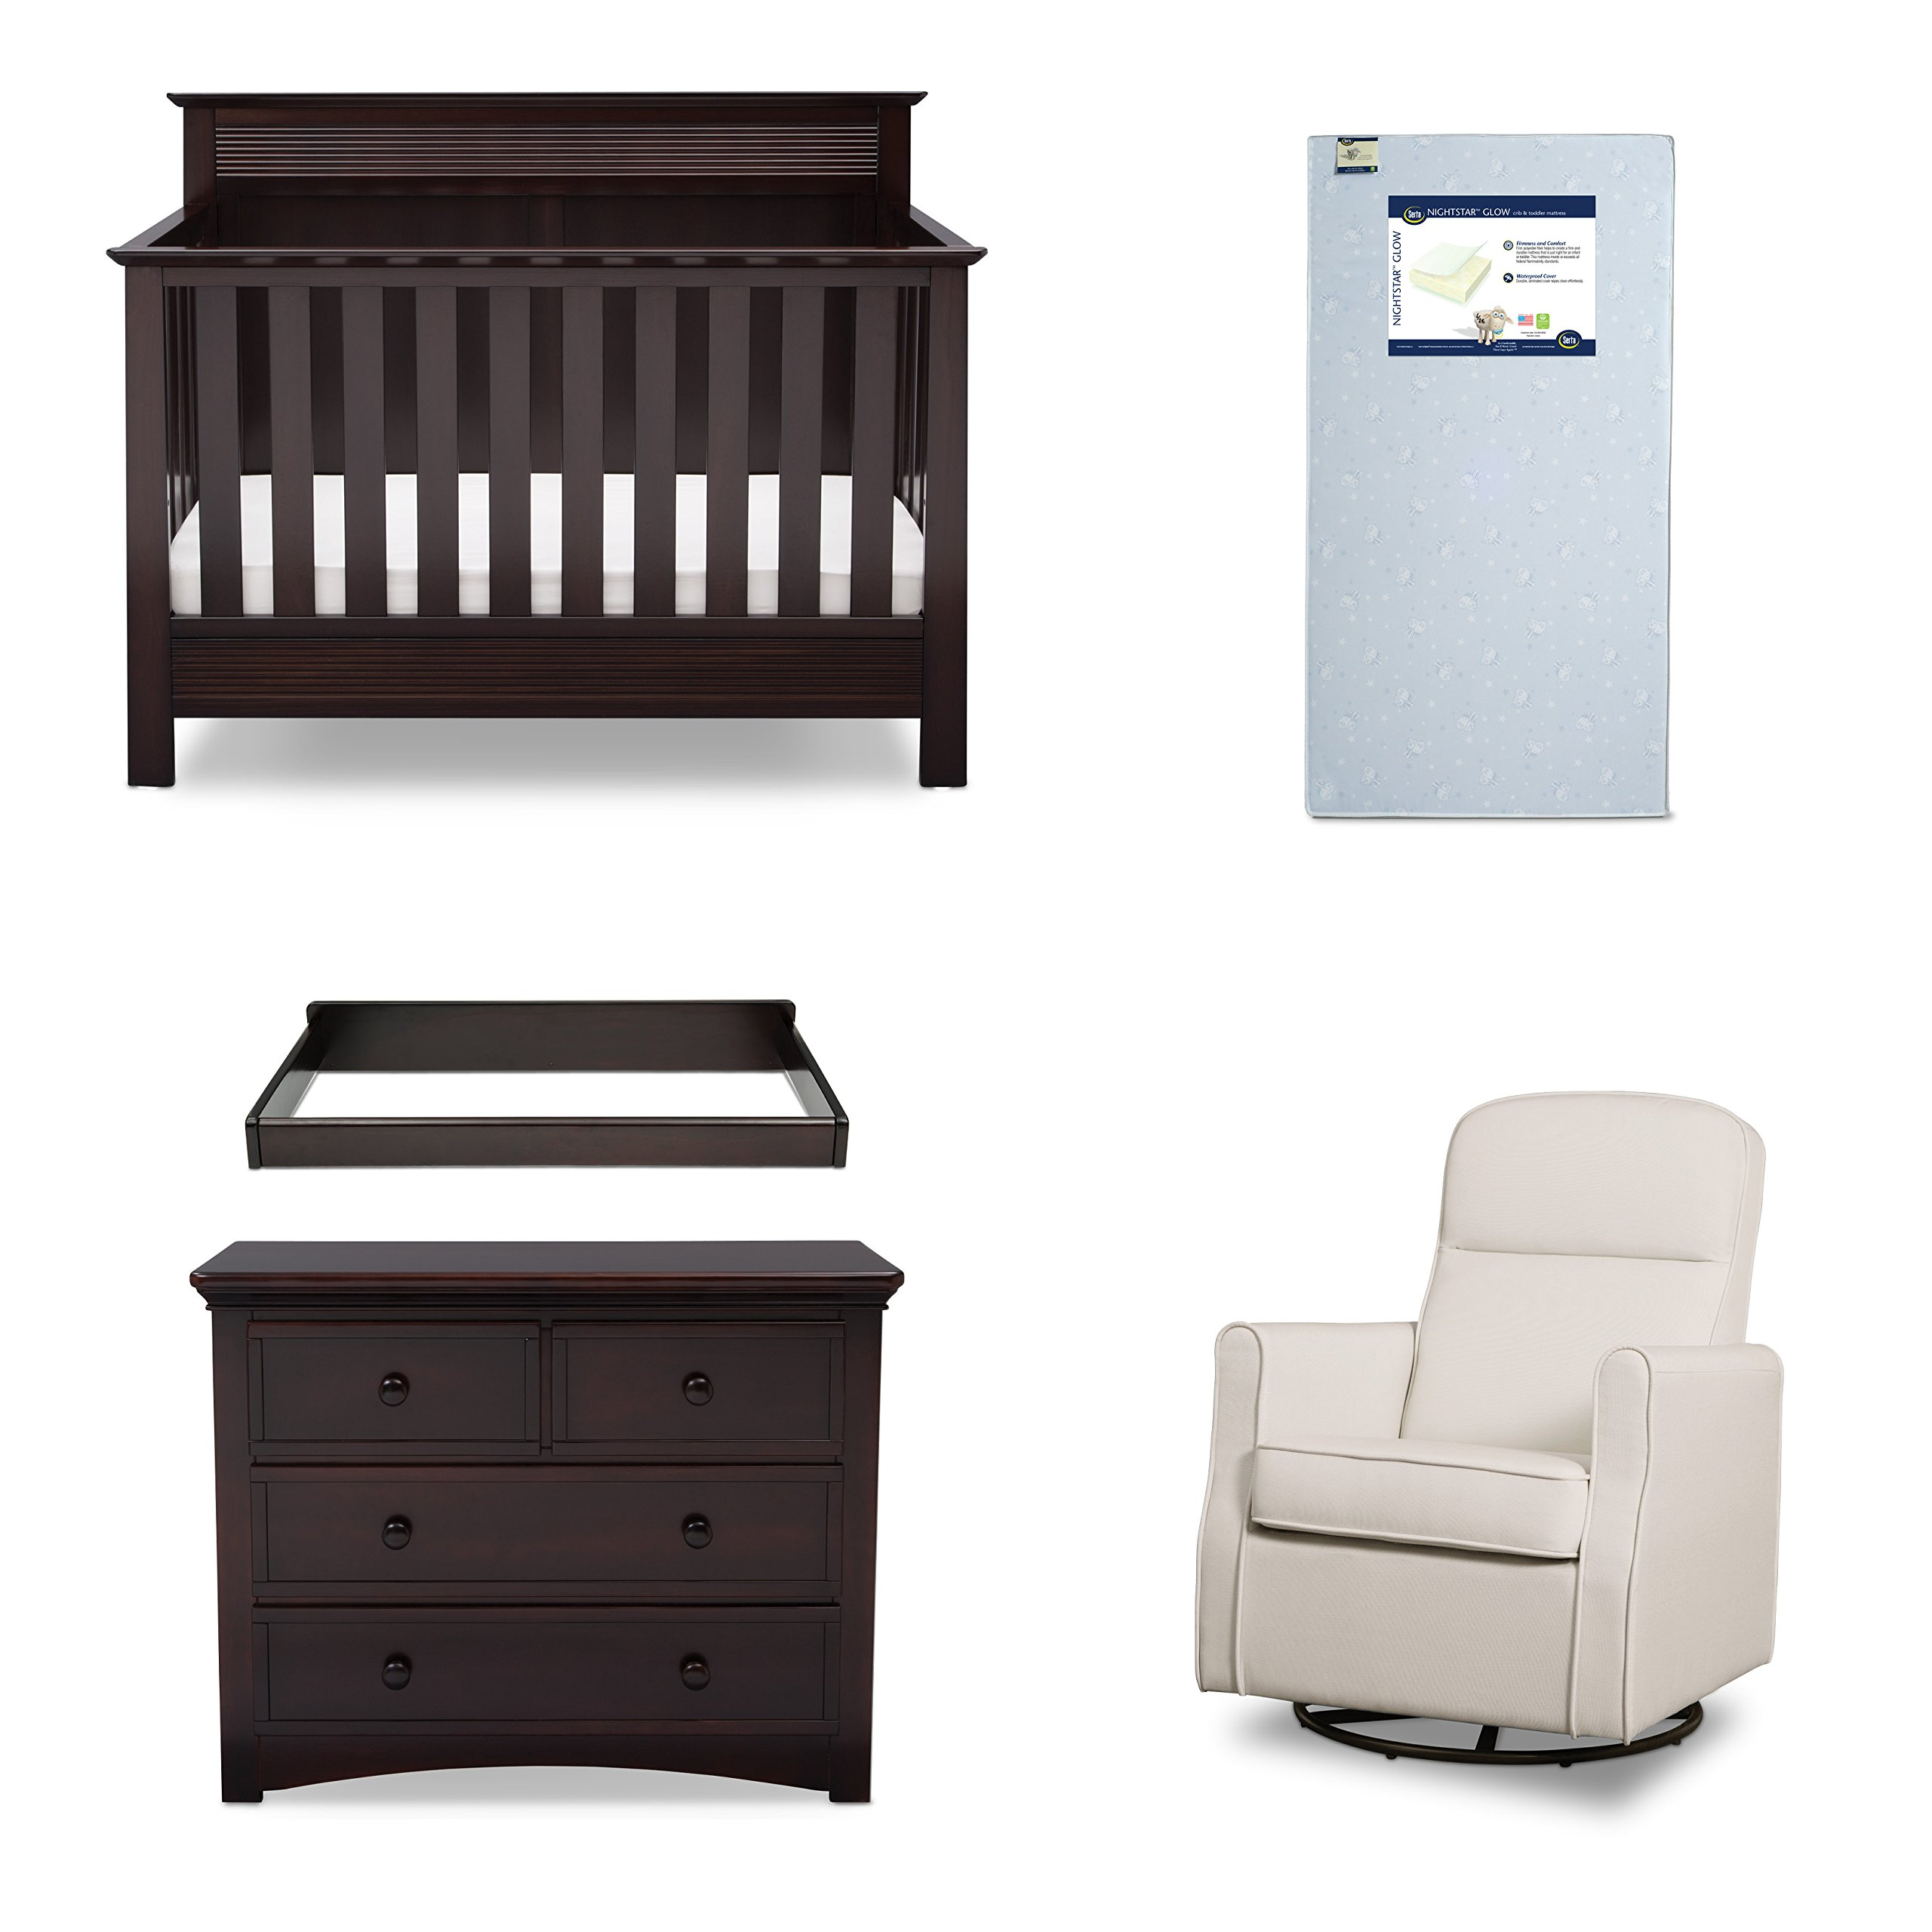 Serta Fall River 5-Piece Nursery Furniture Set (Serta Convertible Crib, 4-Drawer Dresser, Changing Top, Serta Crib Mattress, Glider), Dark Chocolate